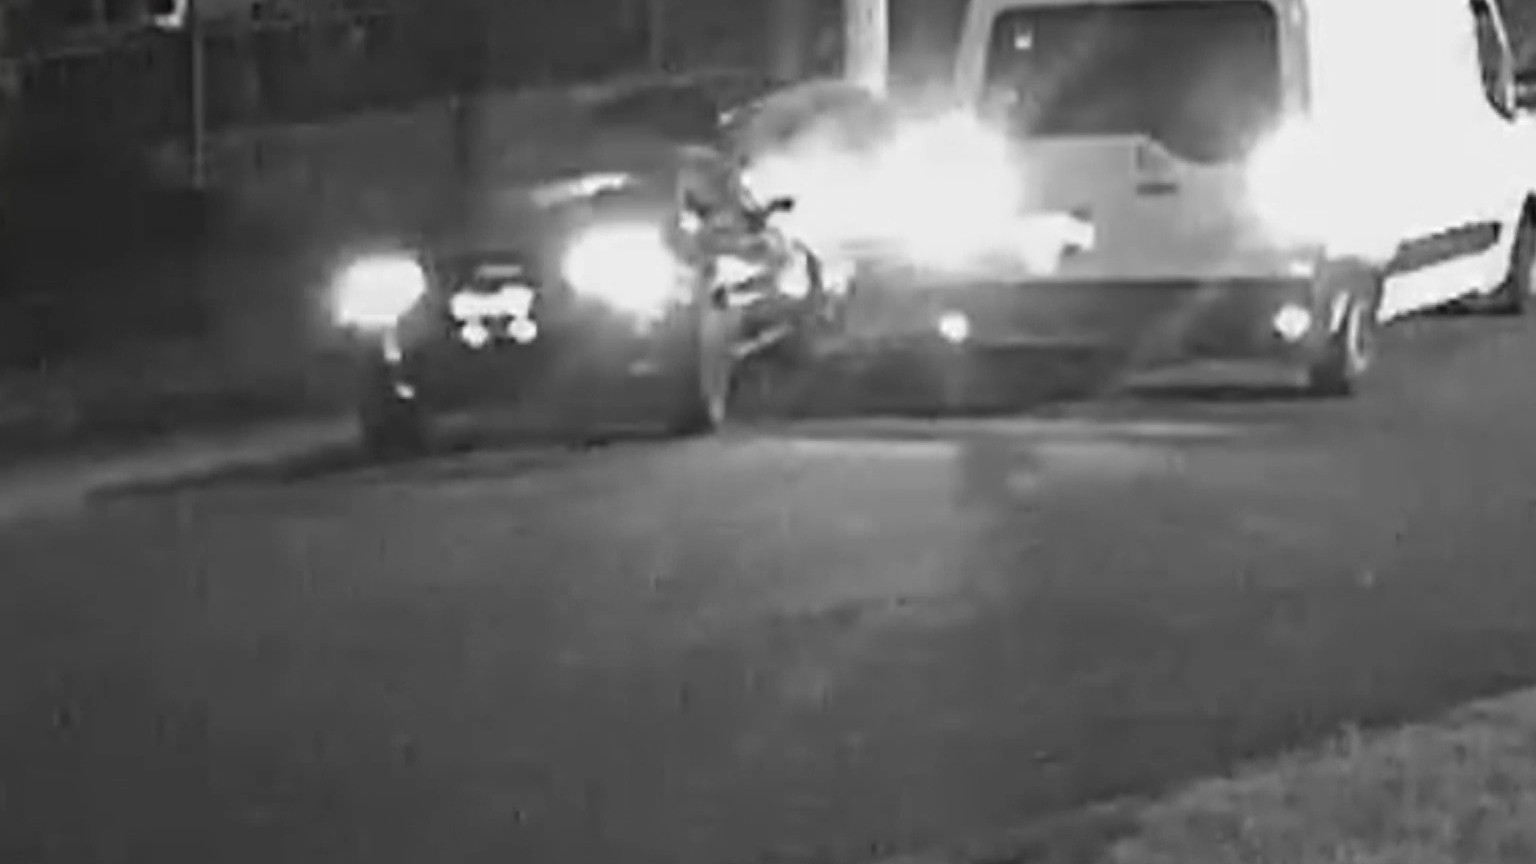 Exclusive vision shows crash suspect appearing to switch vehicles with mystery driver